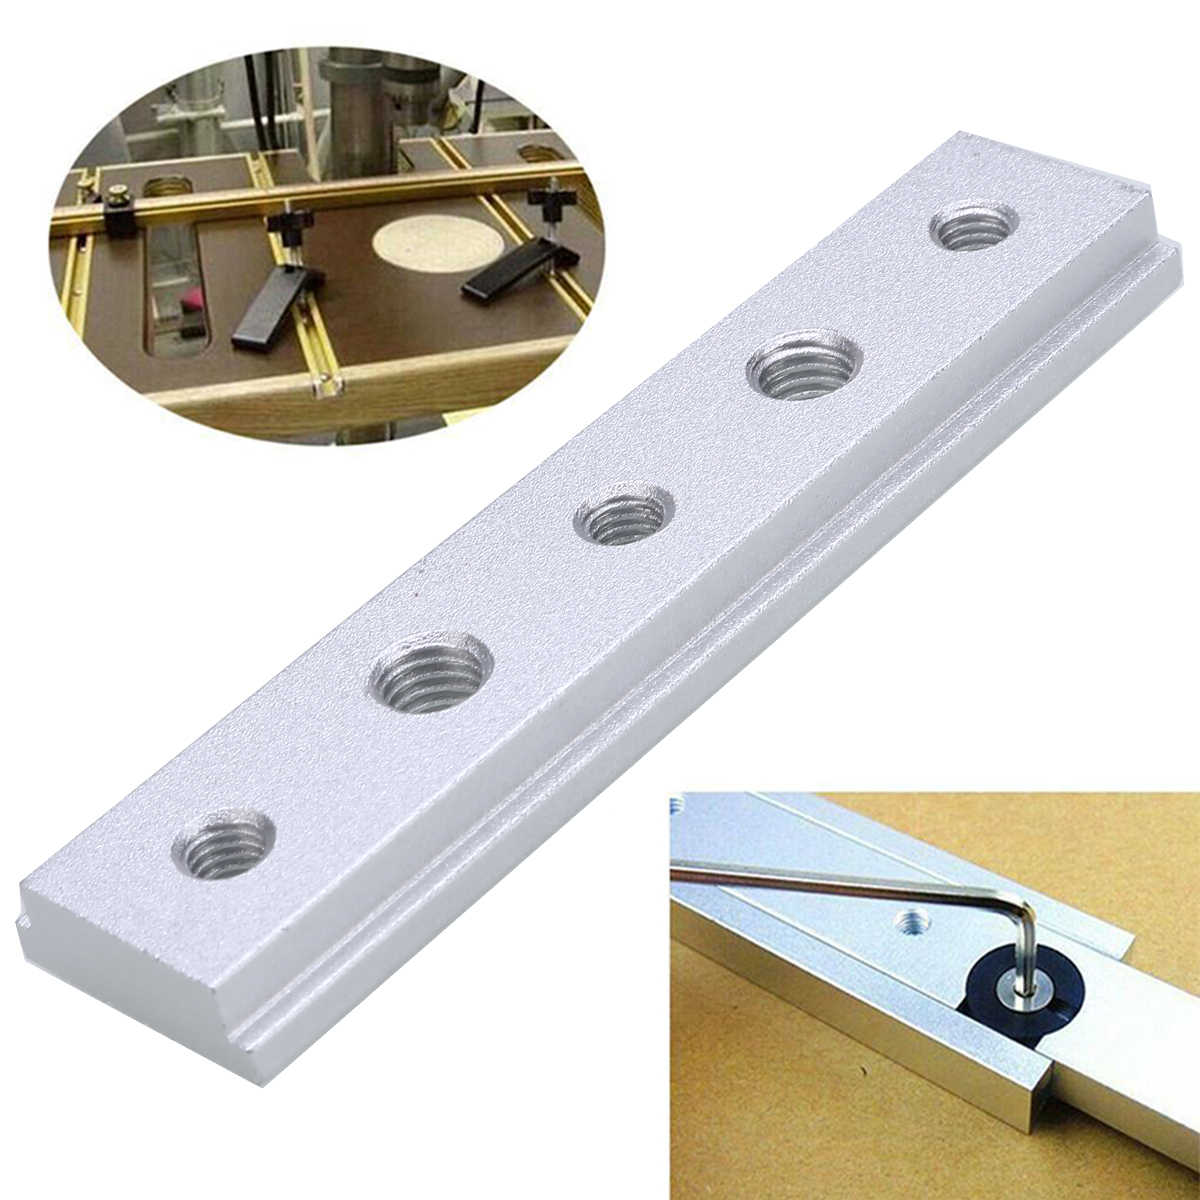 1Pcs Aluminium Alloy T-Slot T-Track Miter Track Jig Fixture For Router Table Woodworking Tools 100mm